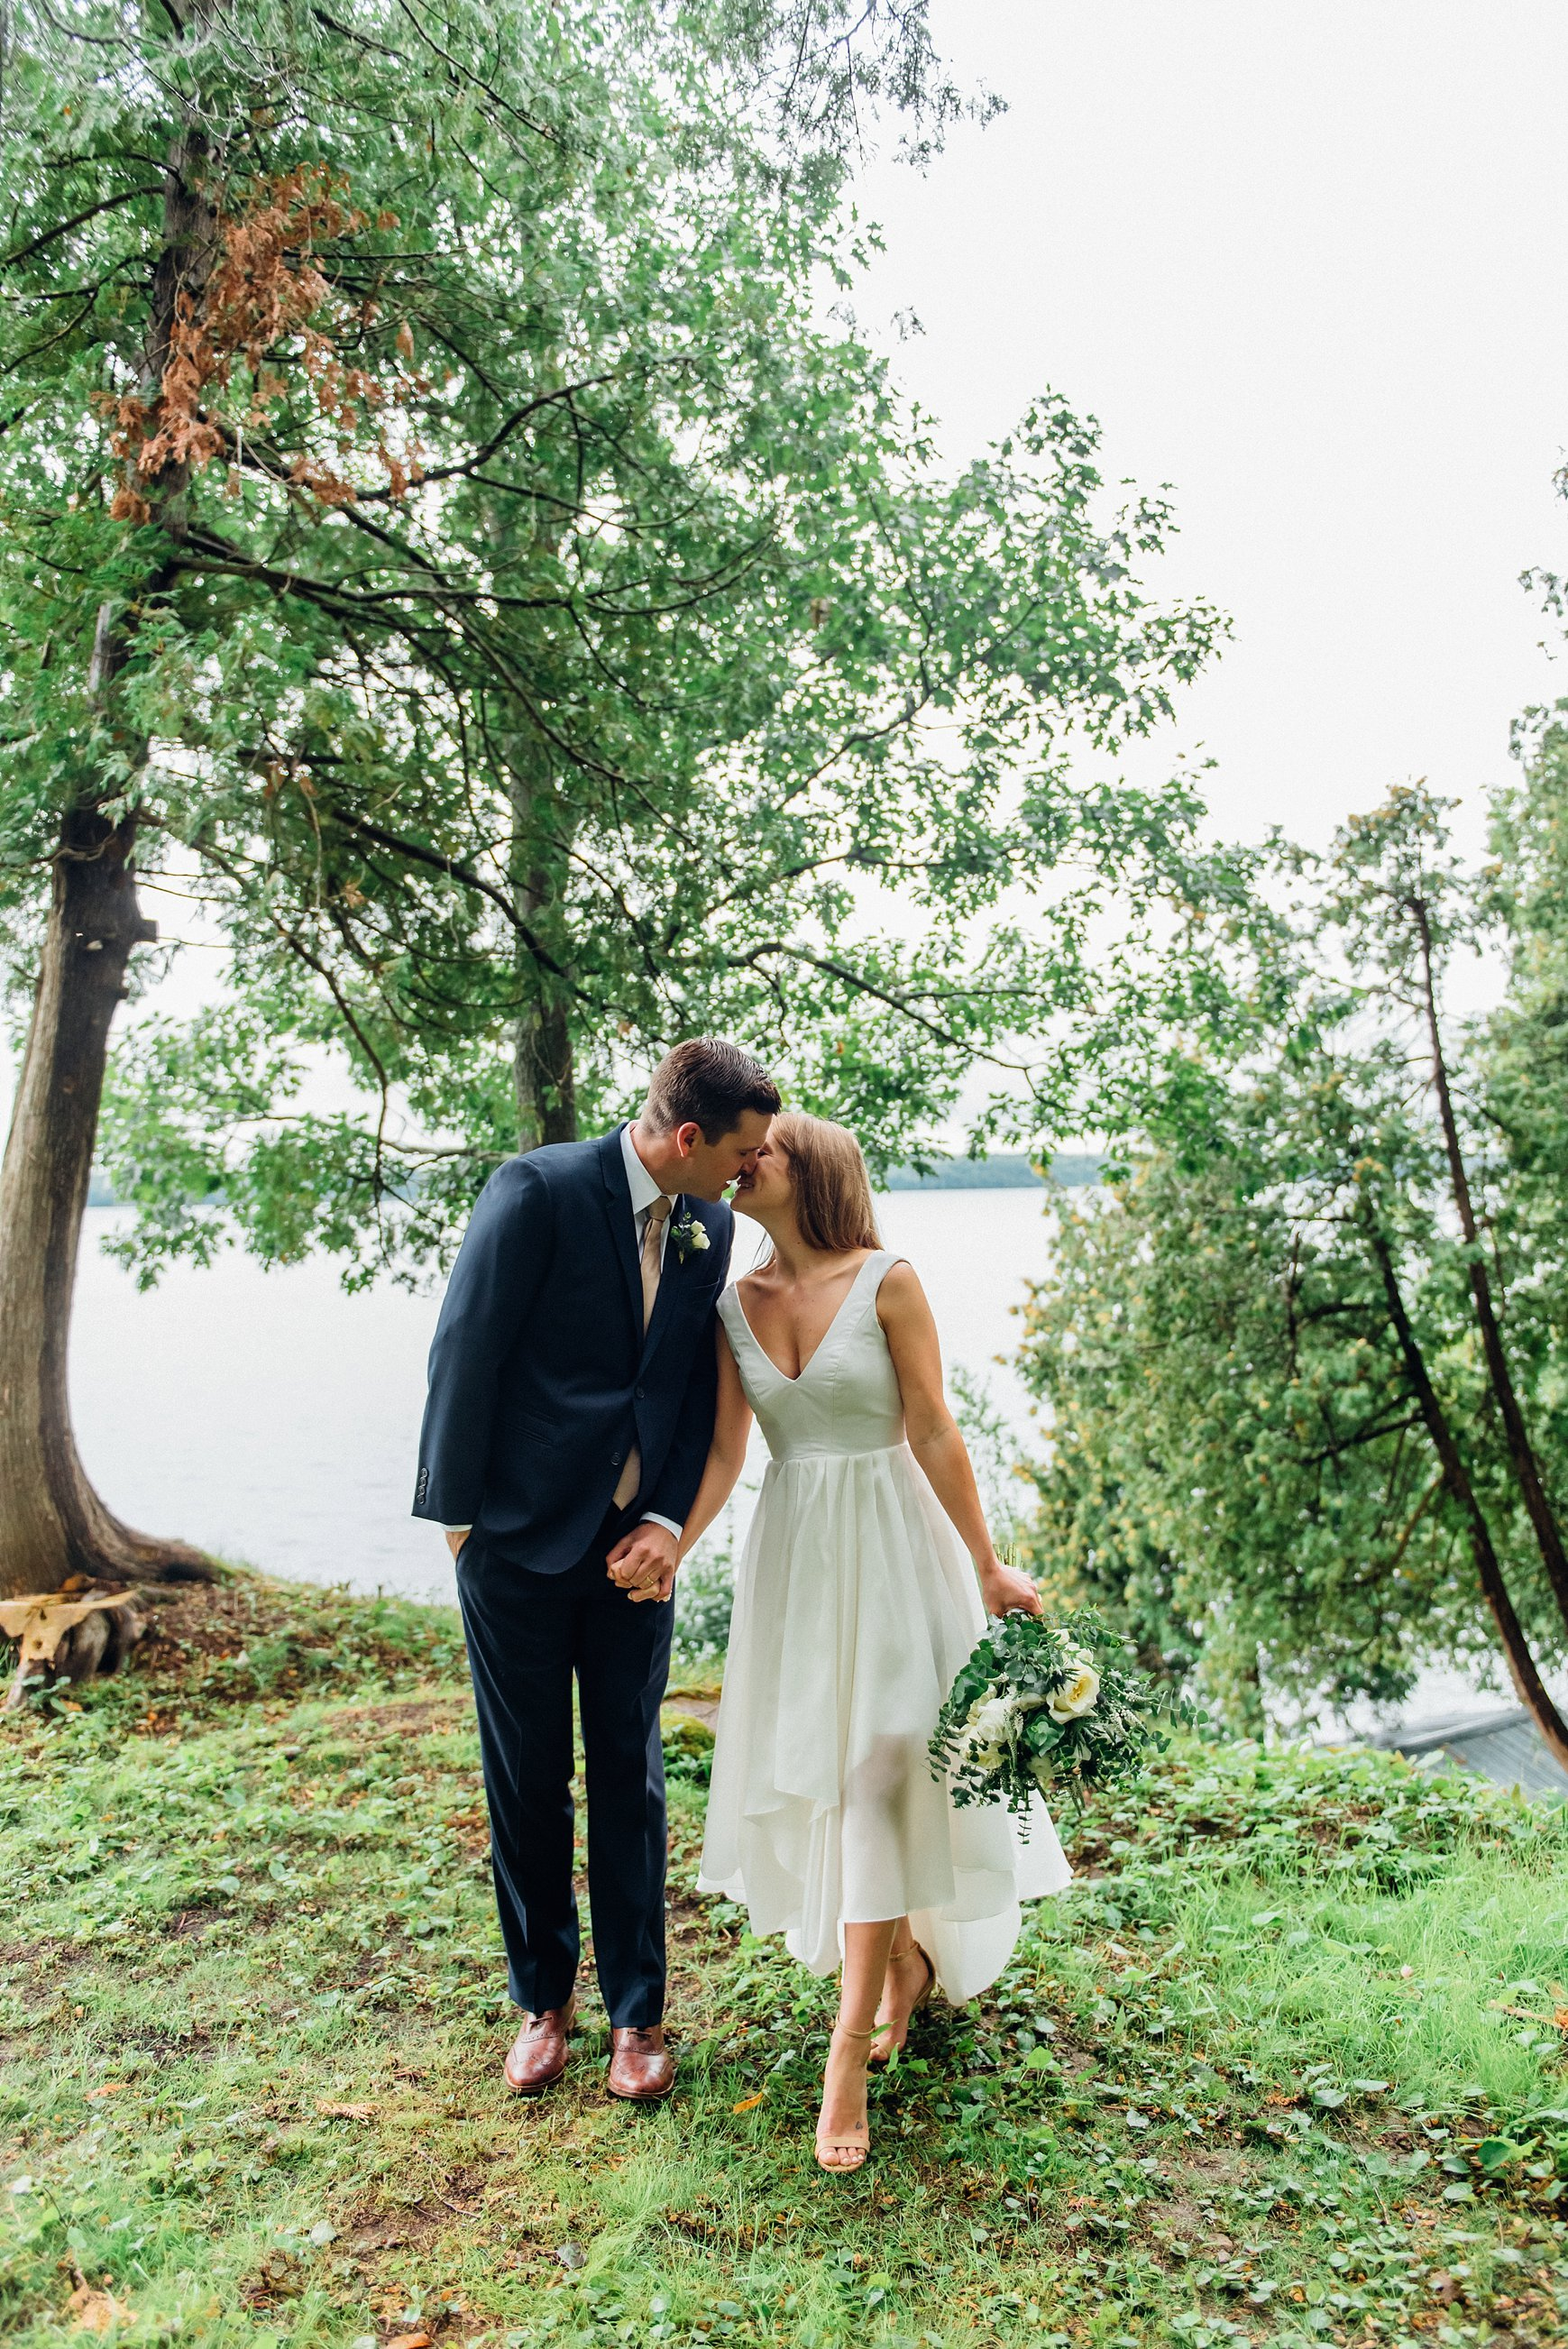 Ali and Batoul Photography - light, airy, indie documentary Ottawa wedding photographer_0062.jpg